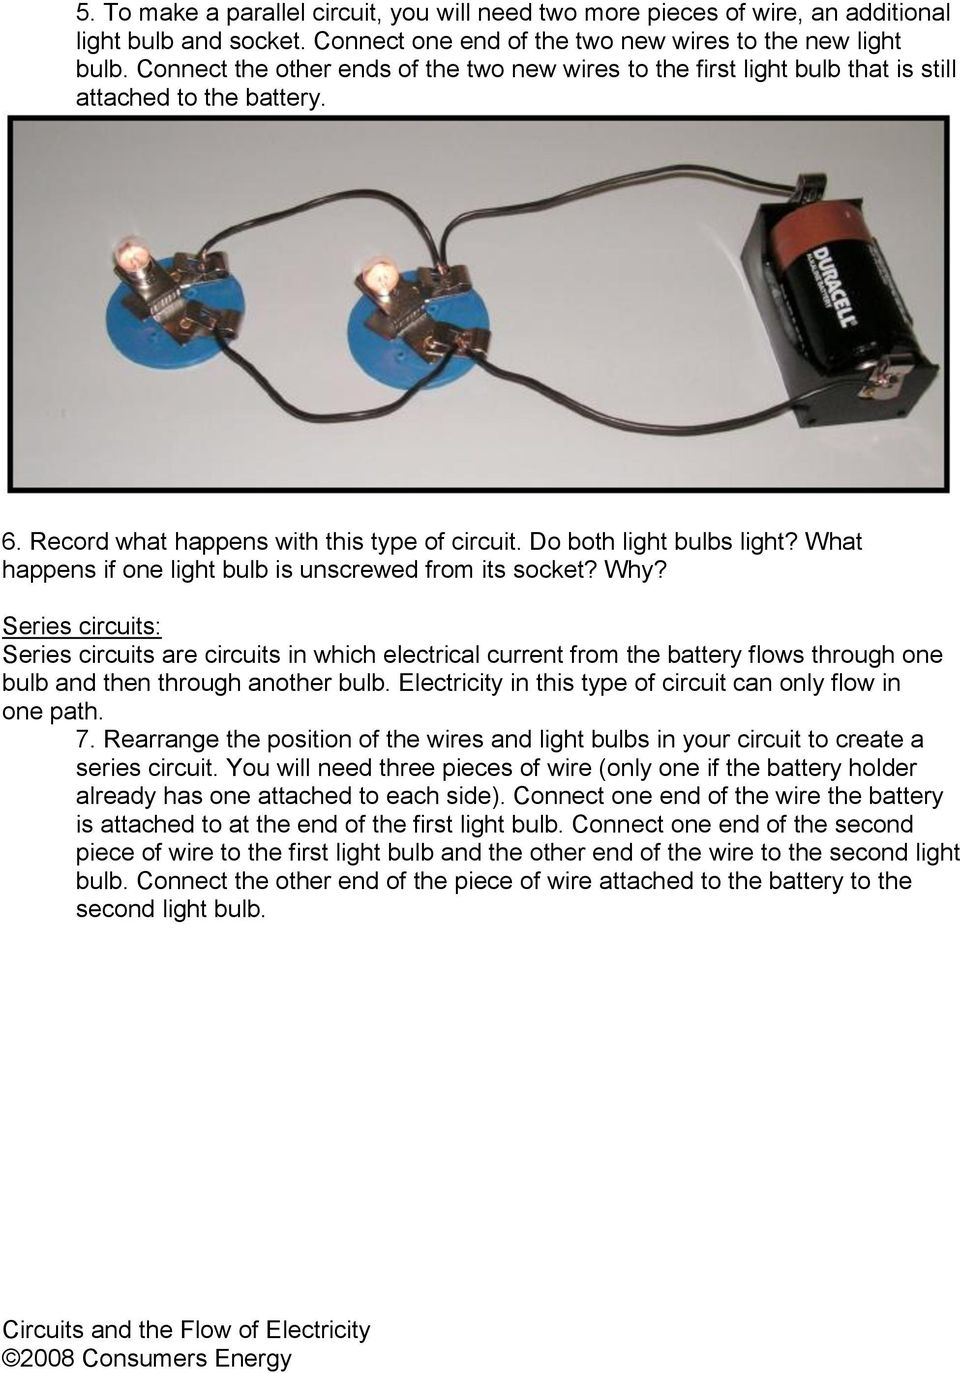 Circuits And The Flow Of Electricity Pdf Wiring Bulbs In Parallel What Happens If One Light Bulb Is Unscrewed From Its Socket Why